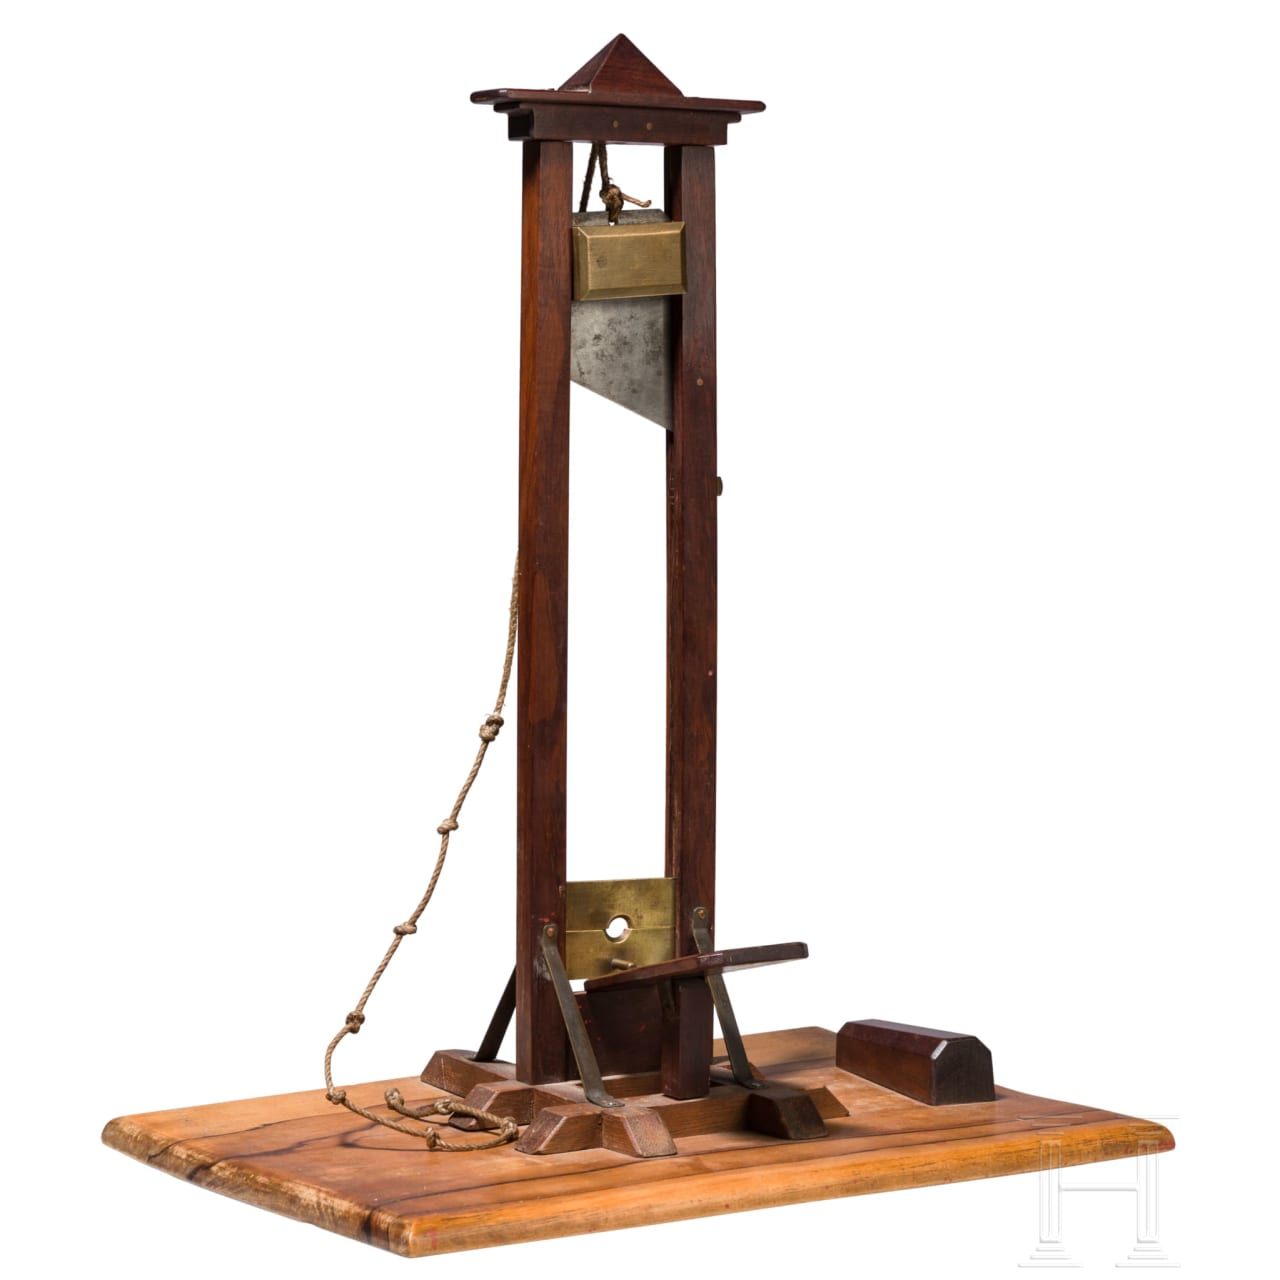 A French walnut, mahogany, iron and brass model of a guillotine, circa 1900